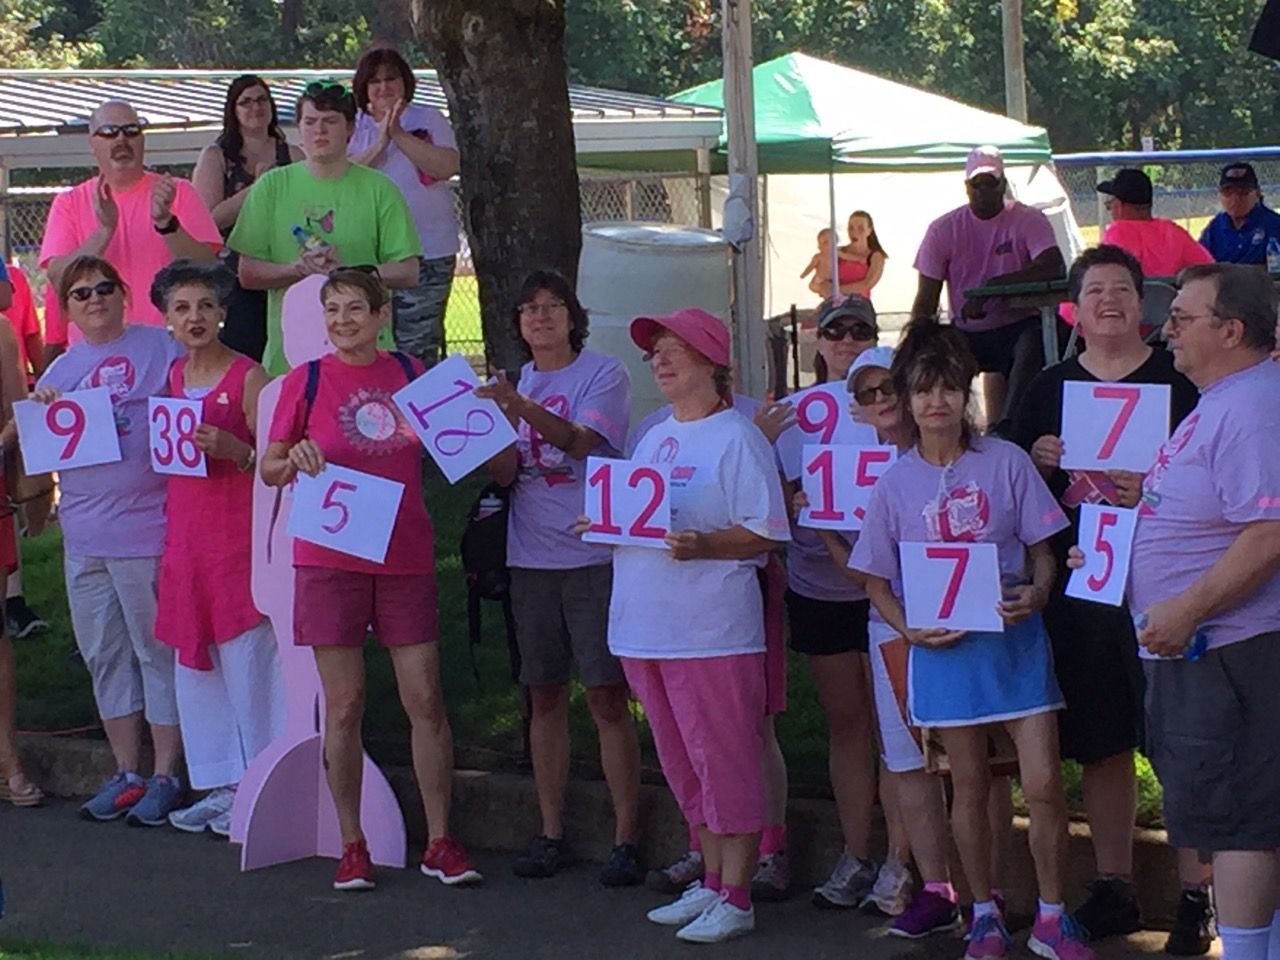 Approximately 63 people will be diagnosed with breast cancer this week in Oregon, according to the American Cancer Society.  That is why 10 teams of softball players from Lane County travel to Salem one weekend each summer to join a movement that is taking a swing at cancer.